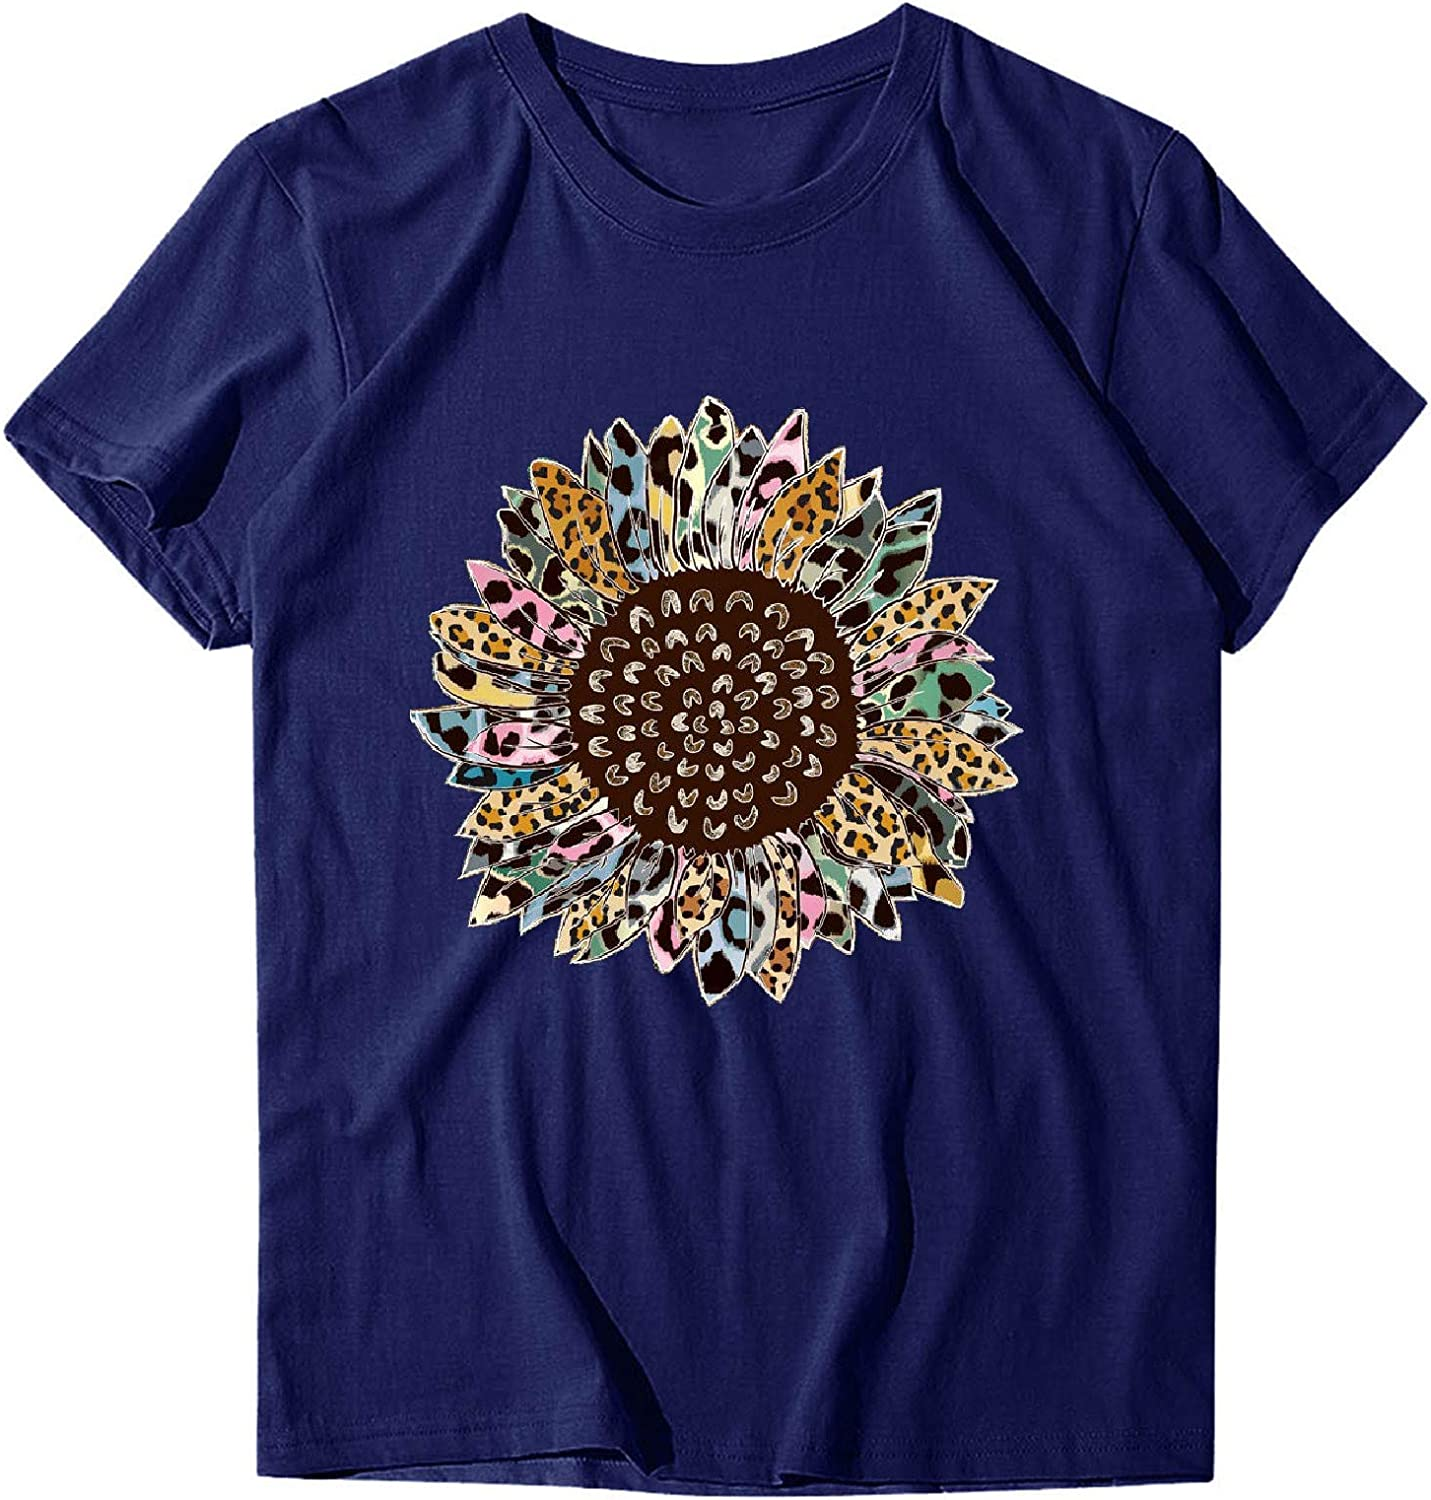 Aukbays Graphic Tees for Women Sunflower Printed Womens Short Sleeve Tops O Neck Summer Casual Shirt T-Shirts Blouses